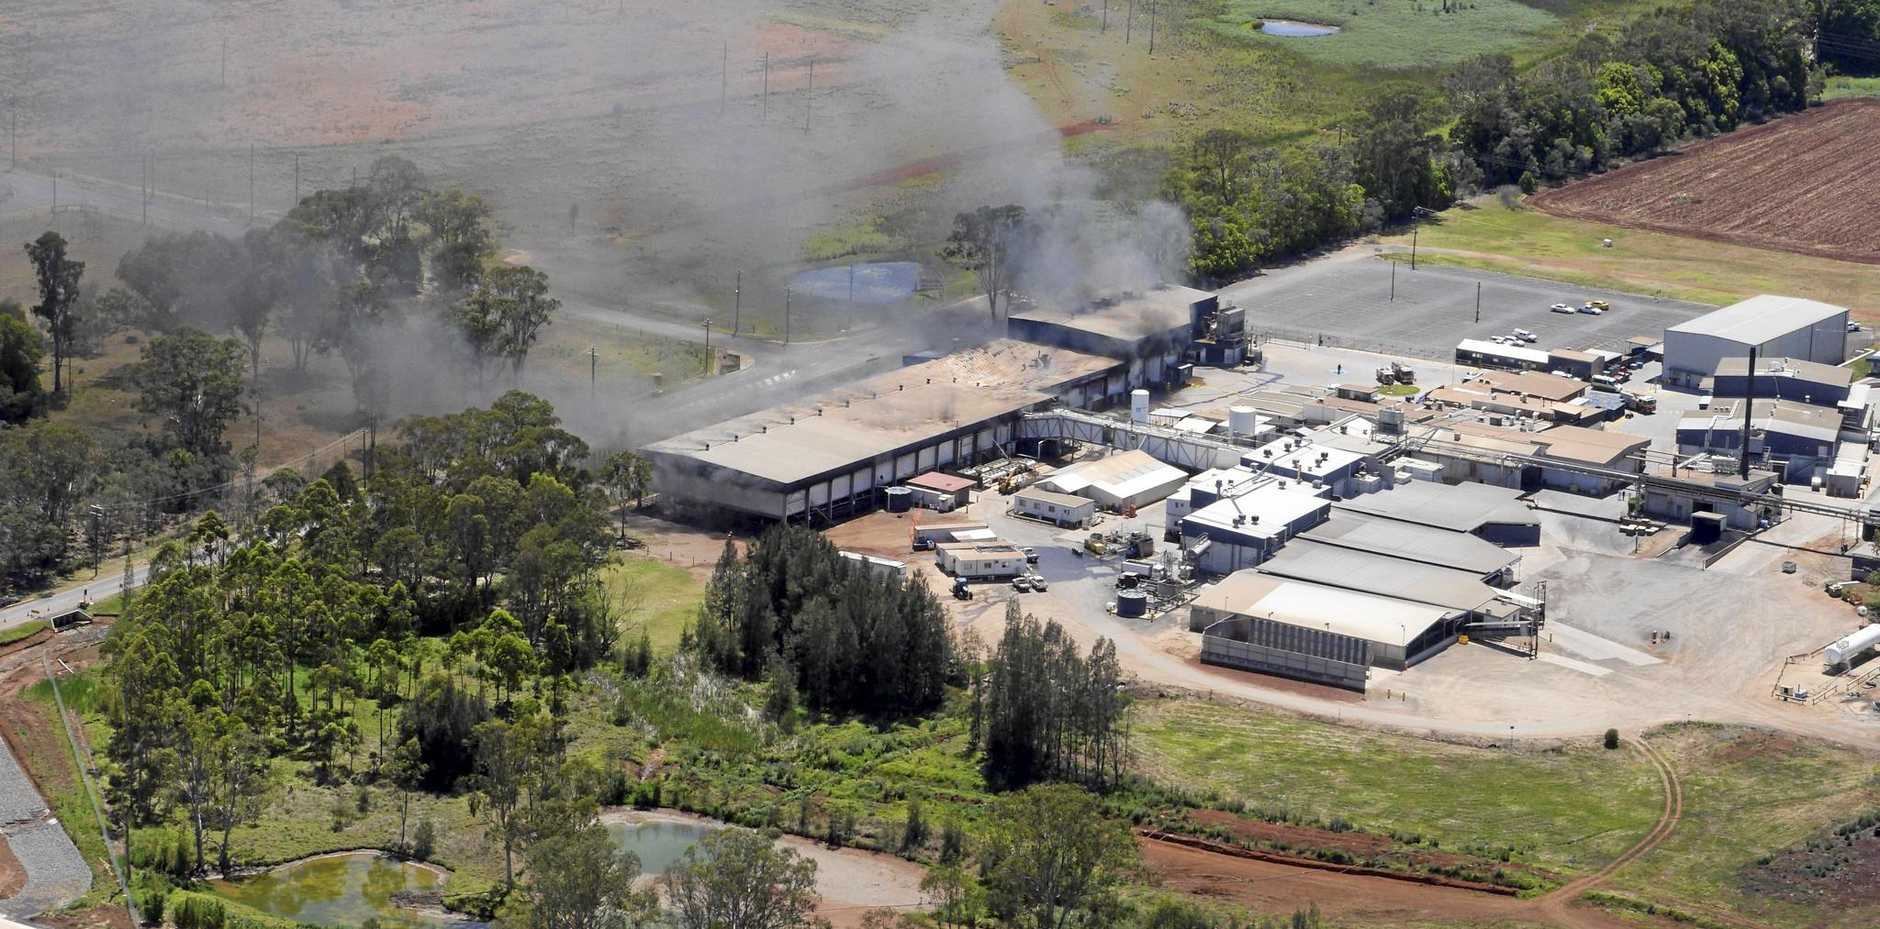 Fire destroyed the Swickers factory at Kingaroy but 120 boners are set to relocate to Ipswich and start work on Monday in a new facility.